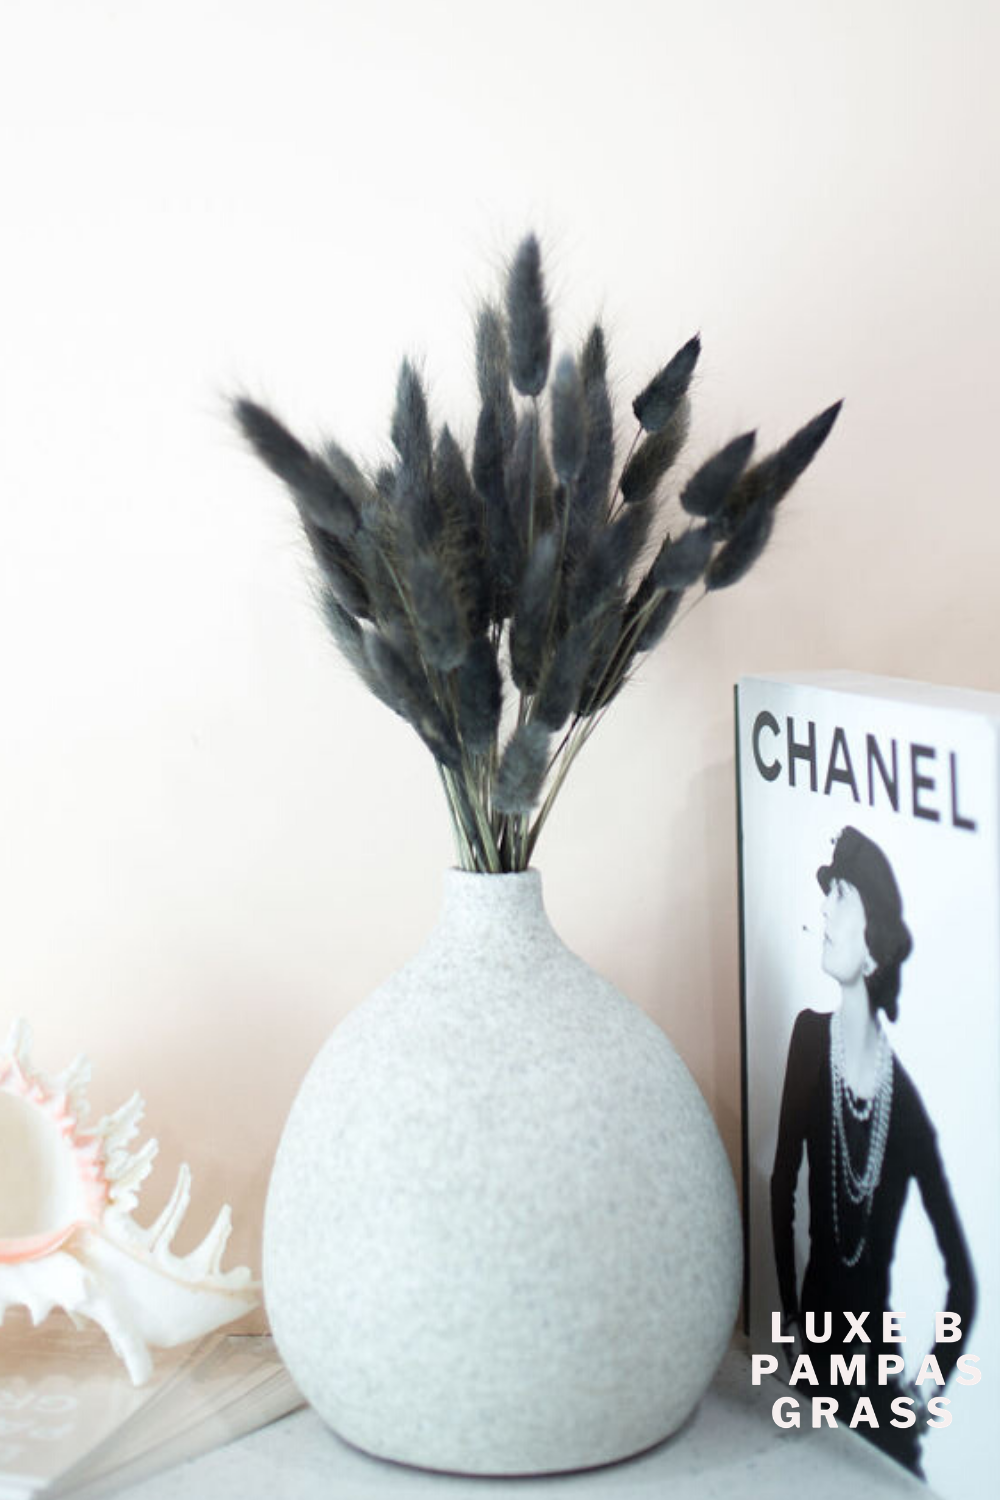 BUNNY TAILS Charcoal Black | Bunny tail, Dried floral, Pampas grass